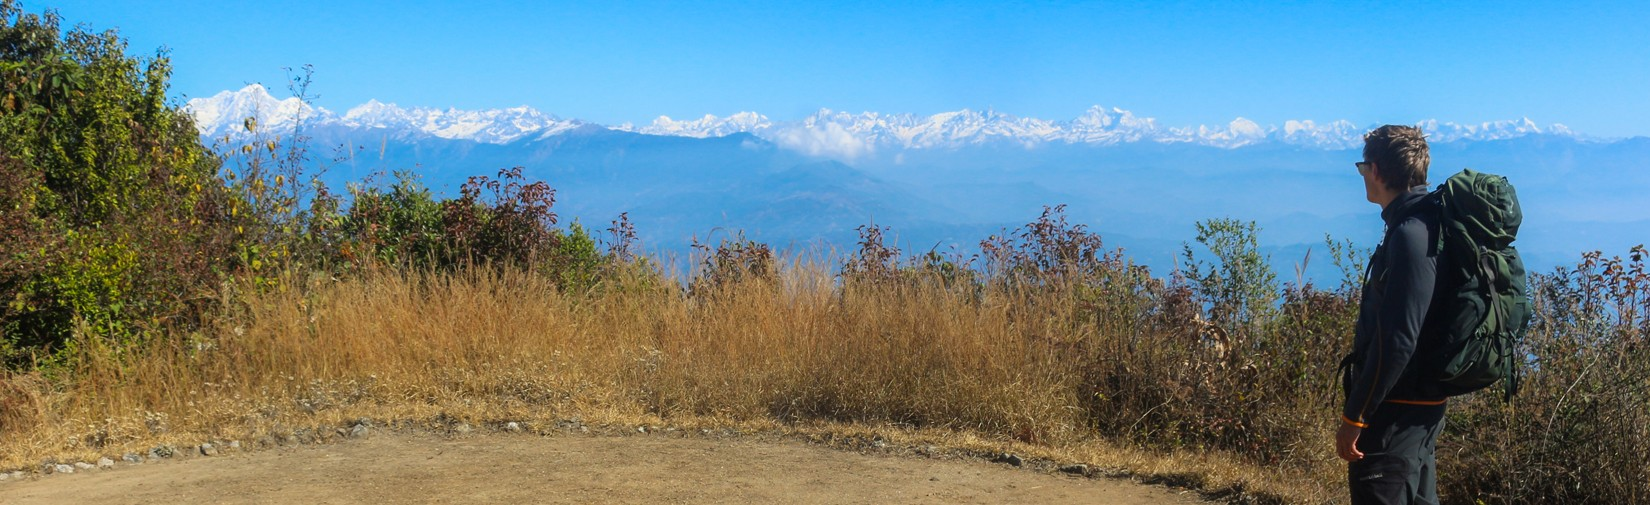 360 himalayanm mountain view from Nagarkot